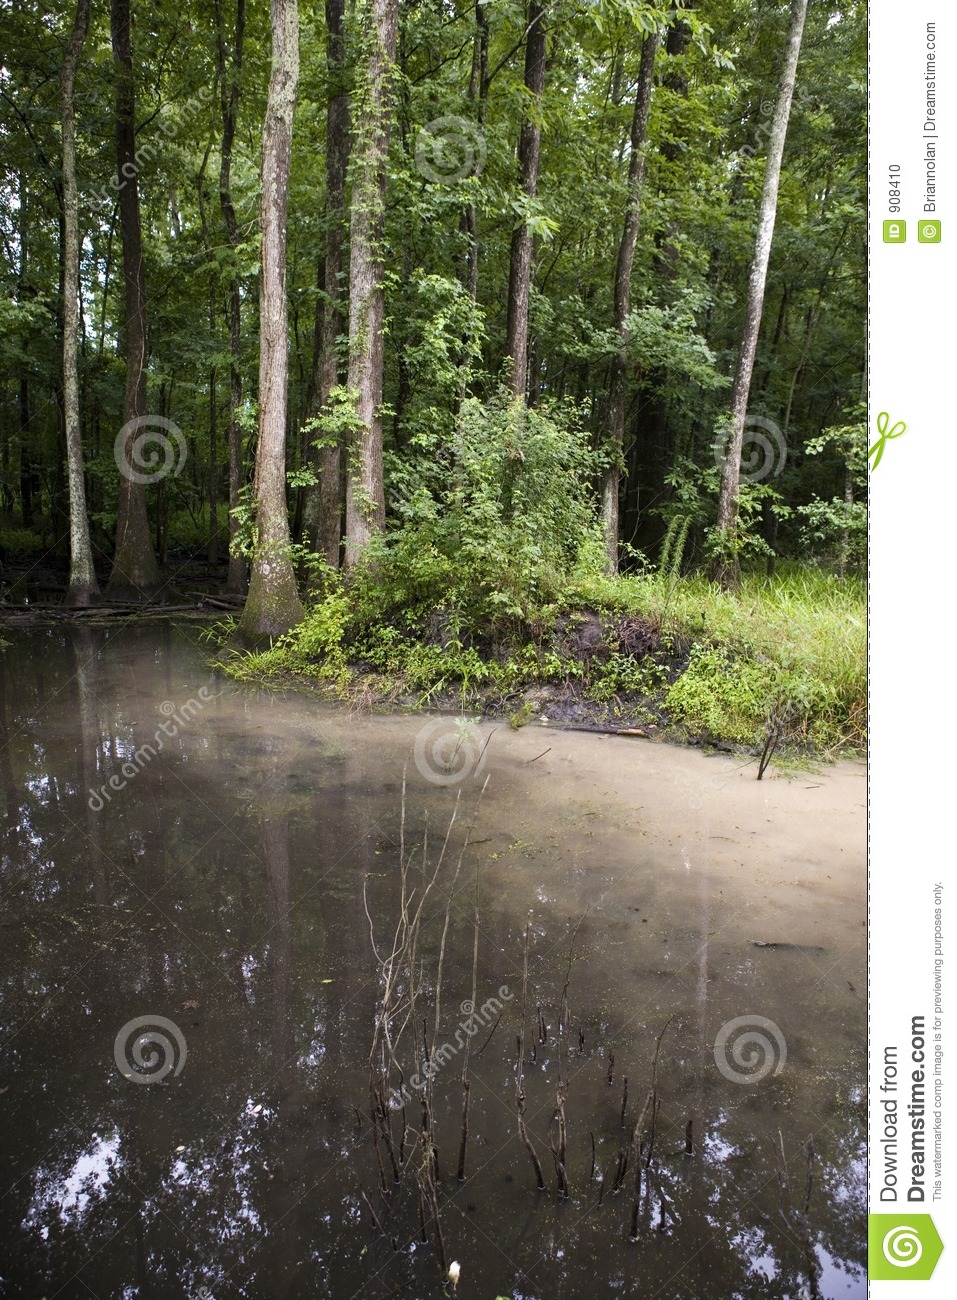 Swamp with soil runoff